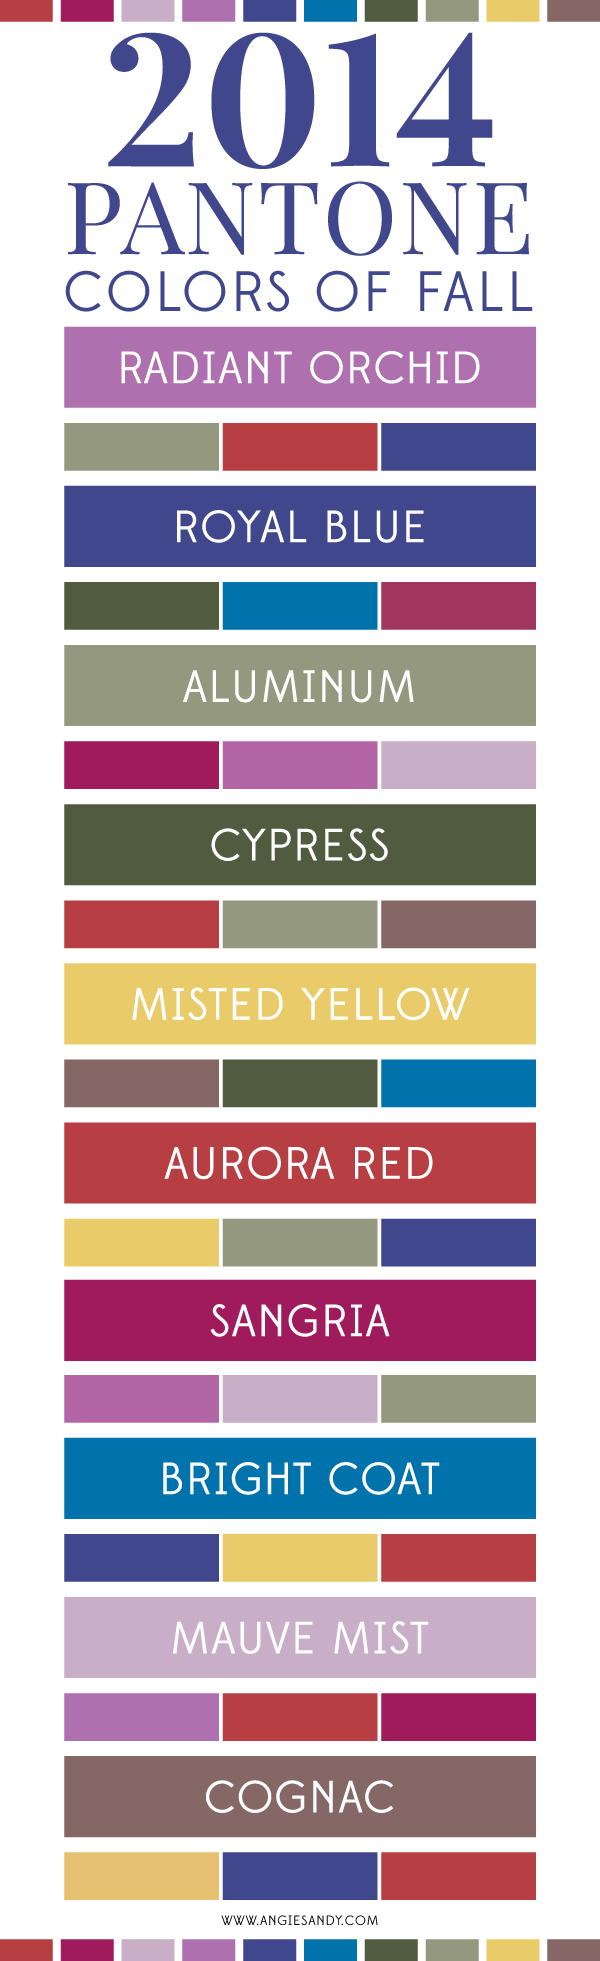 Pantone Colors of Fall 2014 #angiesandy #pantone #colorpalette